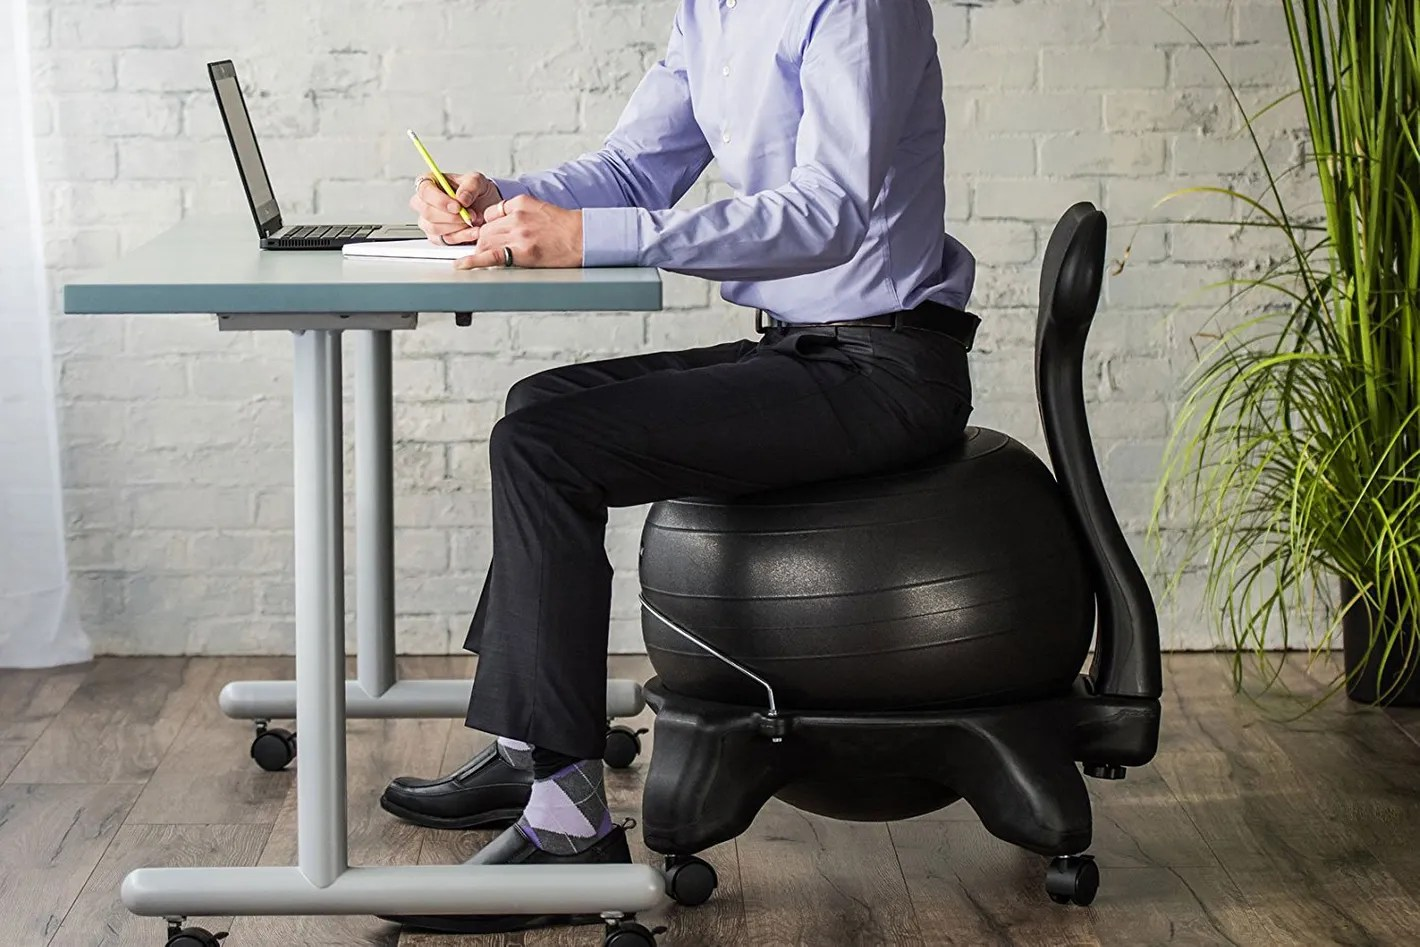 Exercise Ball Desk Chair 9 Best Ergonomic Office Chairs According To Doctors 2018